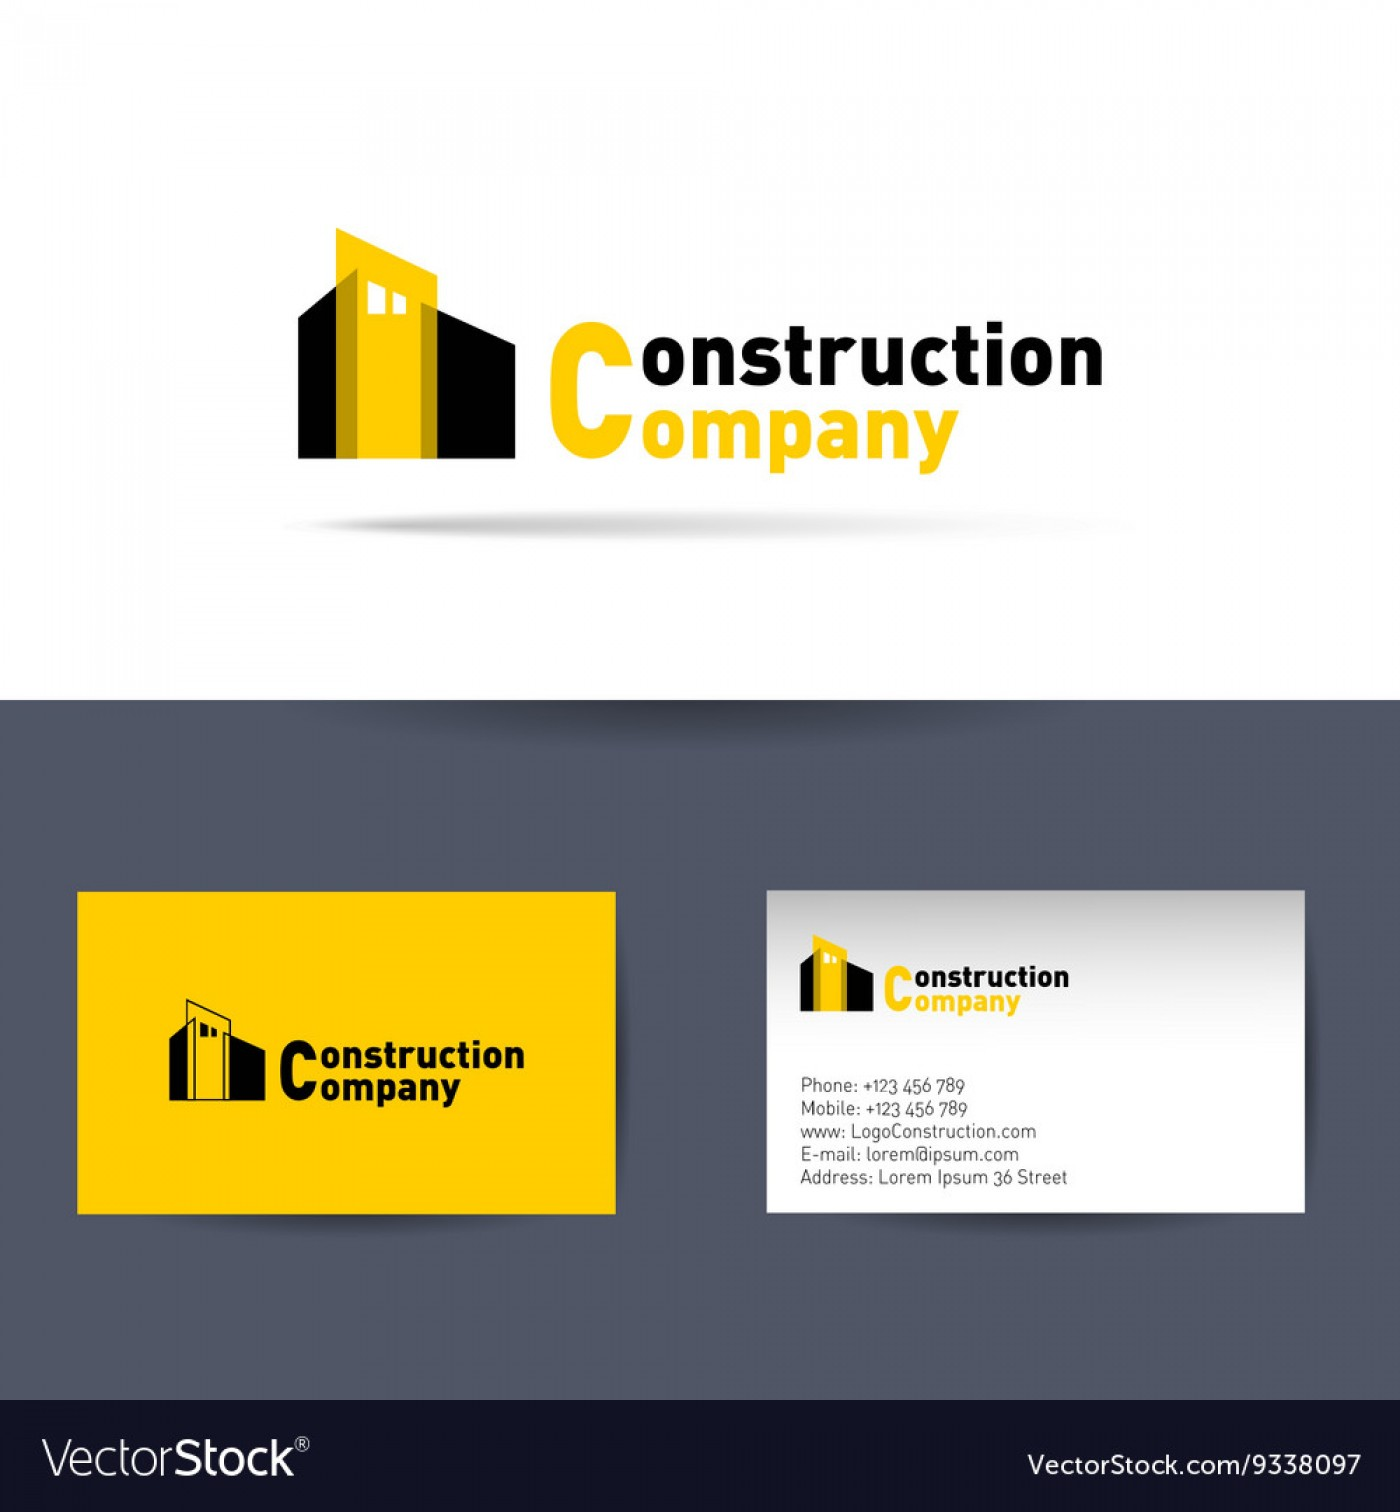 007 Awful Construction Busines Card Template Idea  Company Visiting Format Word For Material1400